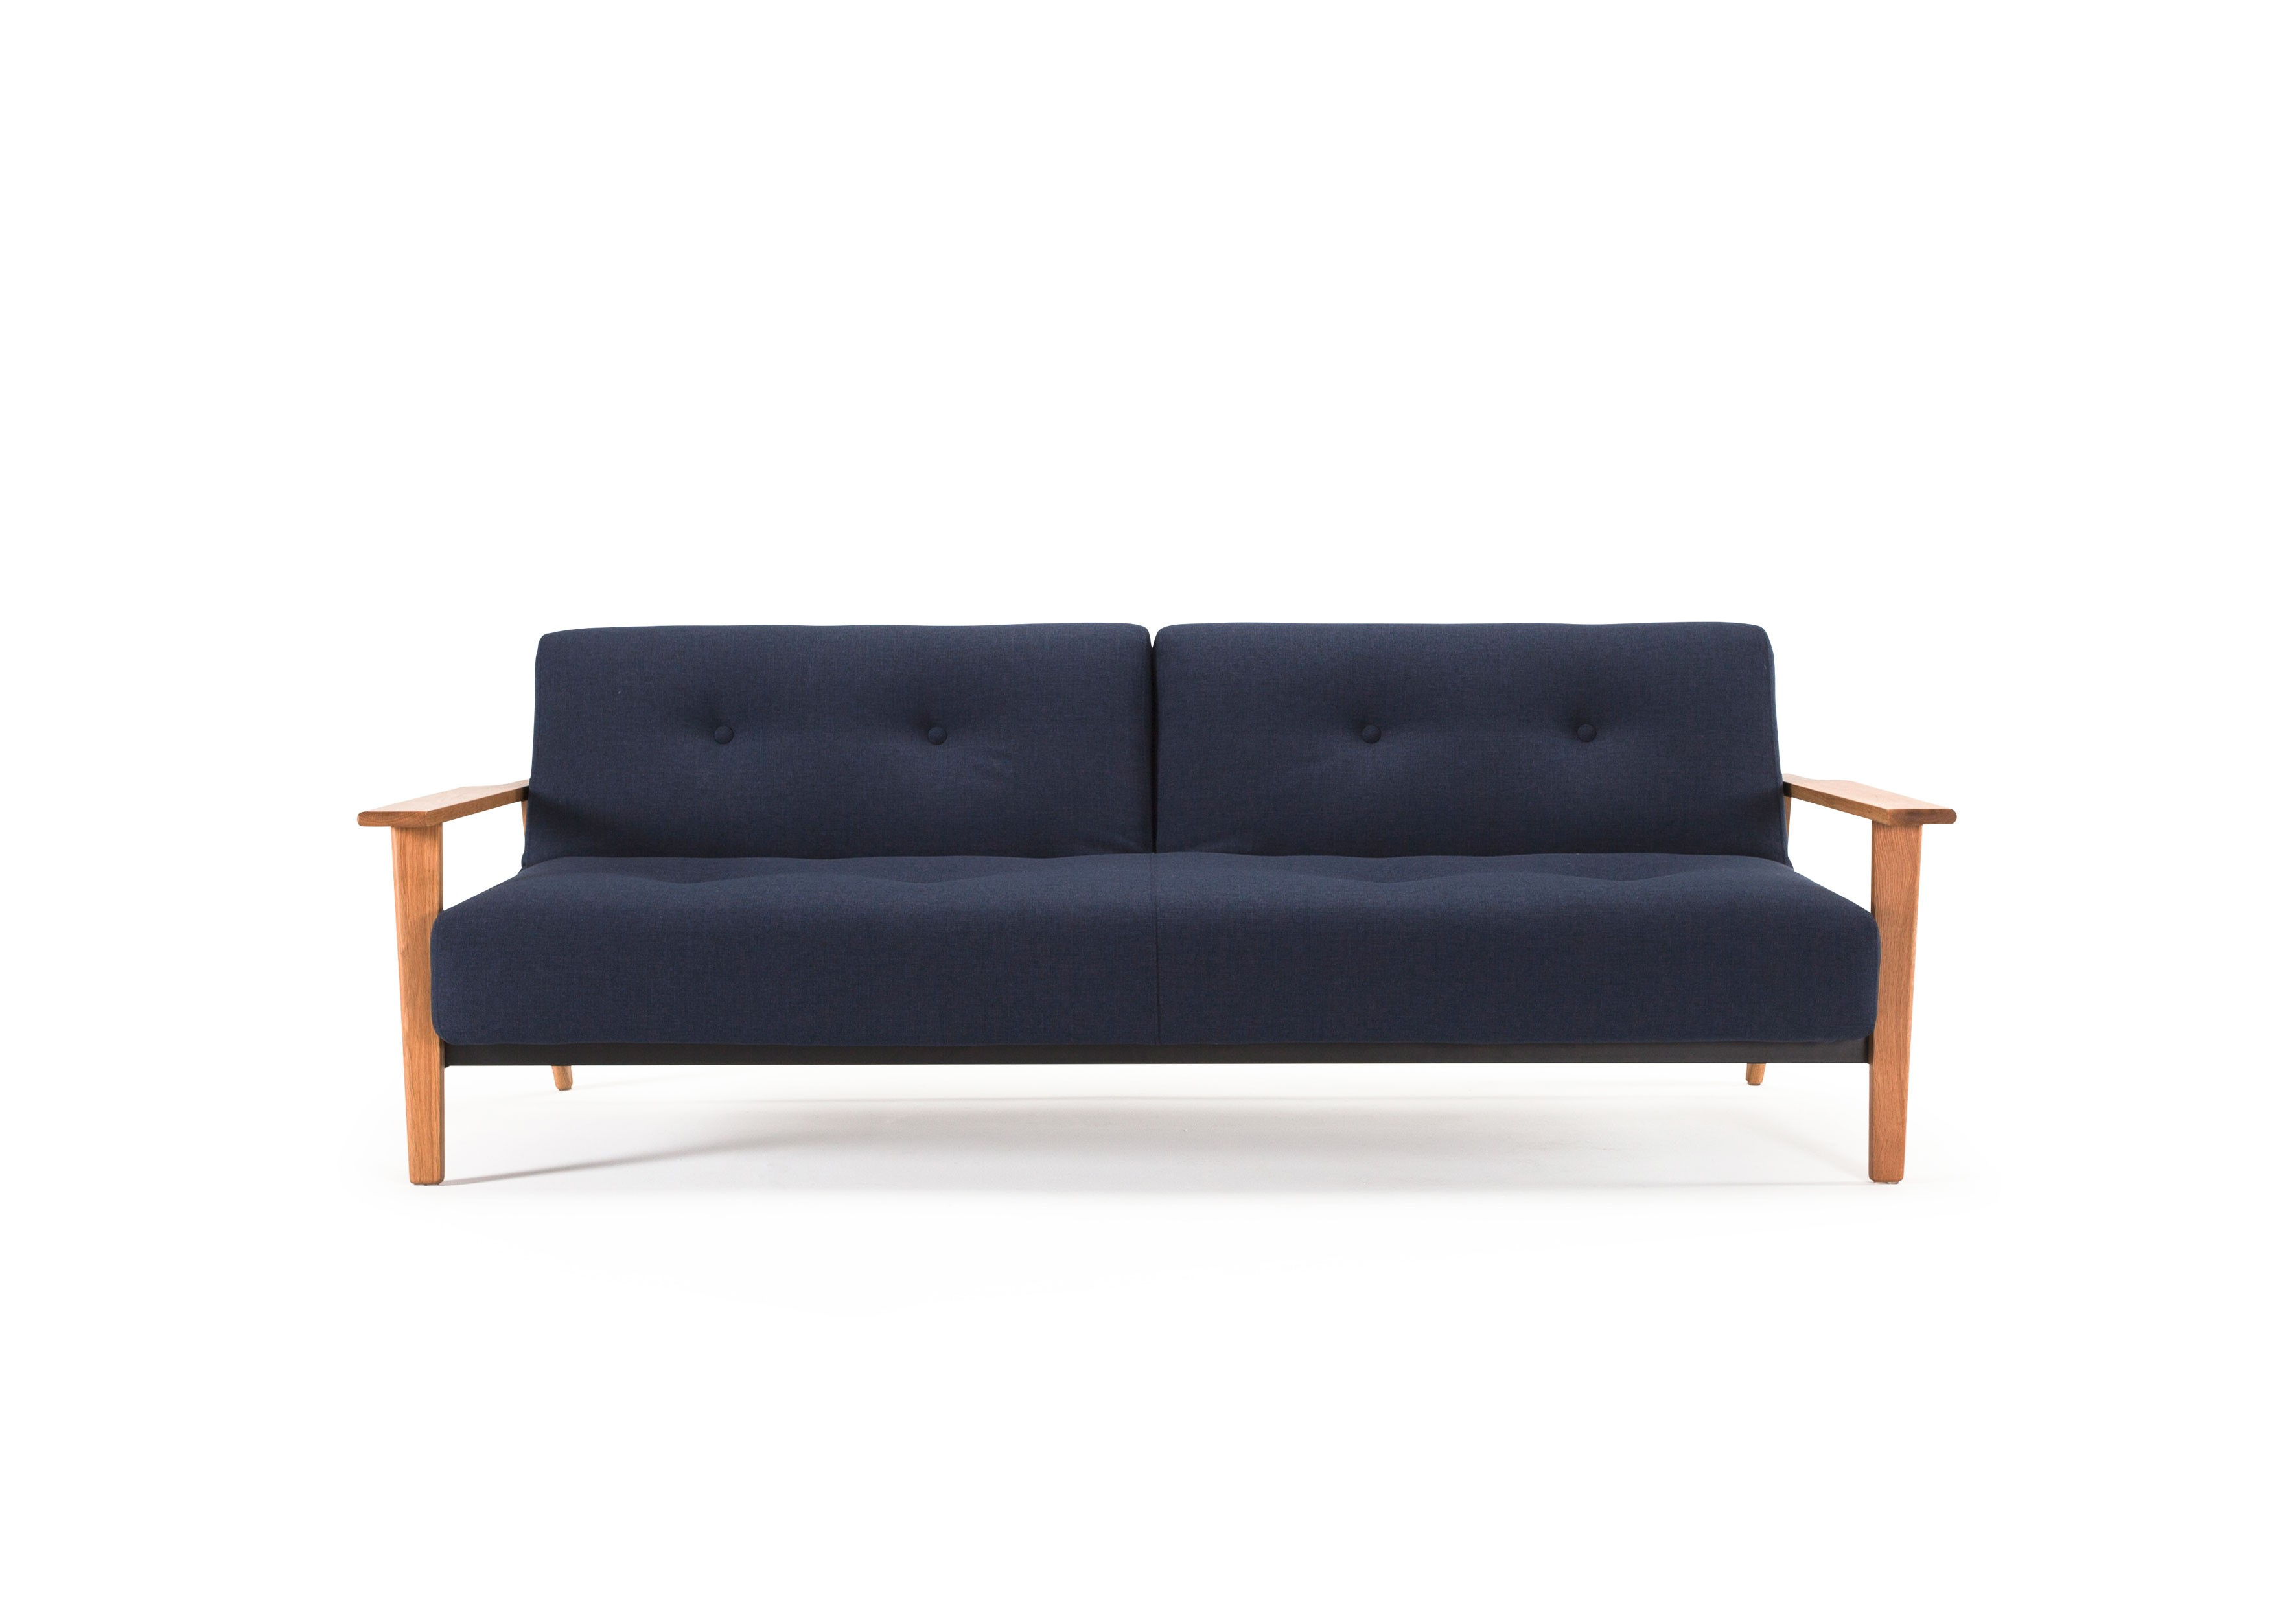 Ample Frej Sofa Bed